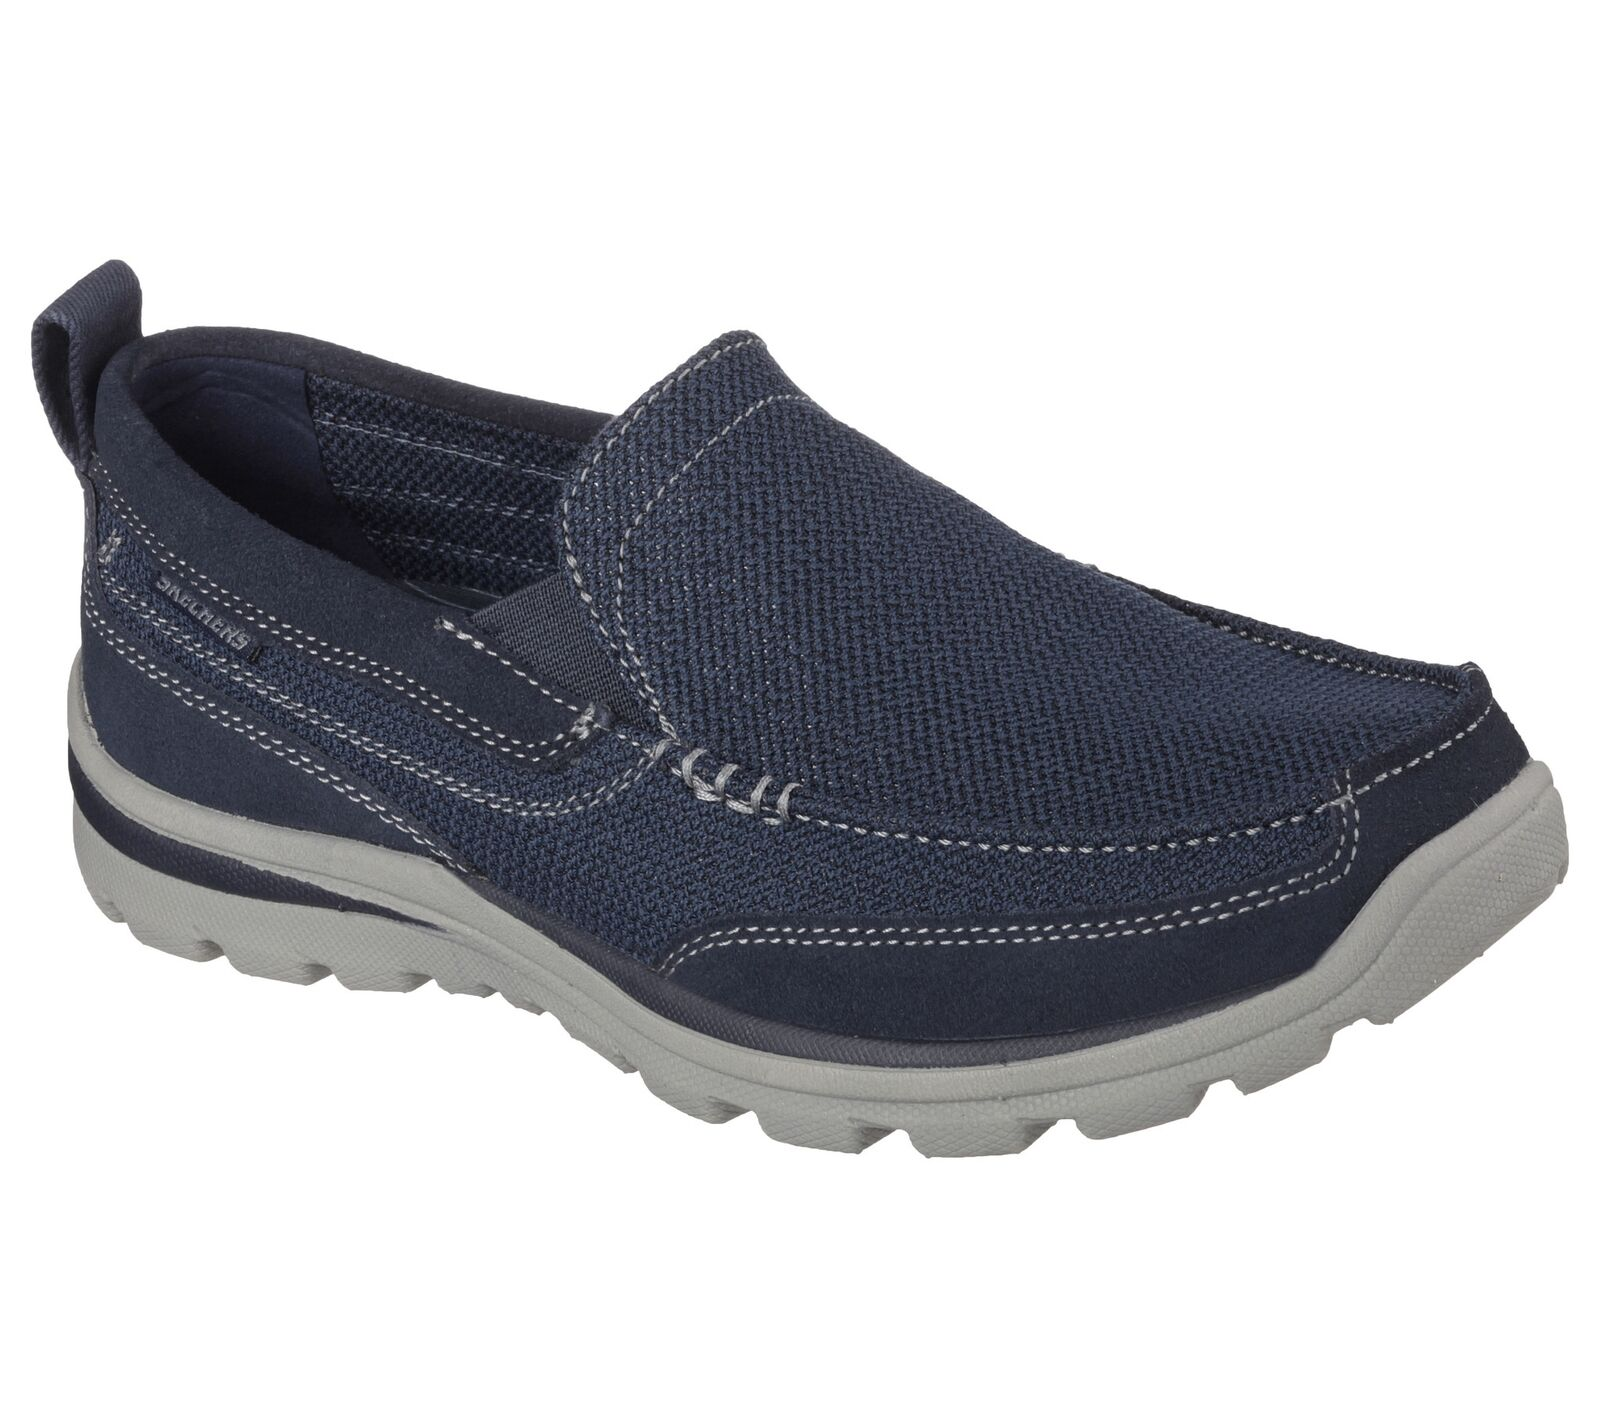 Skechers Relaxed Fit - Milford - 64365 Navy zapatos